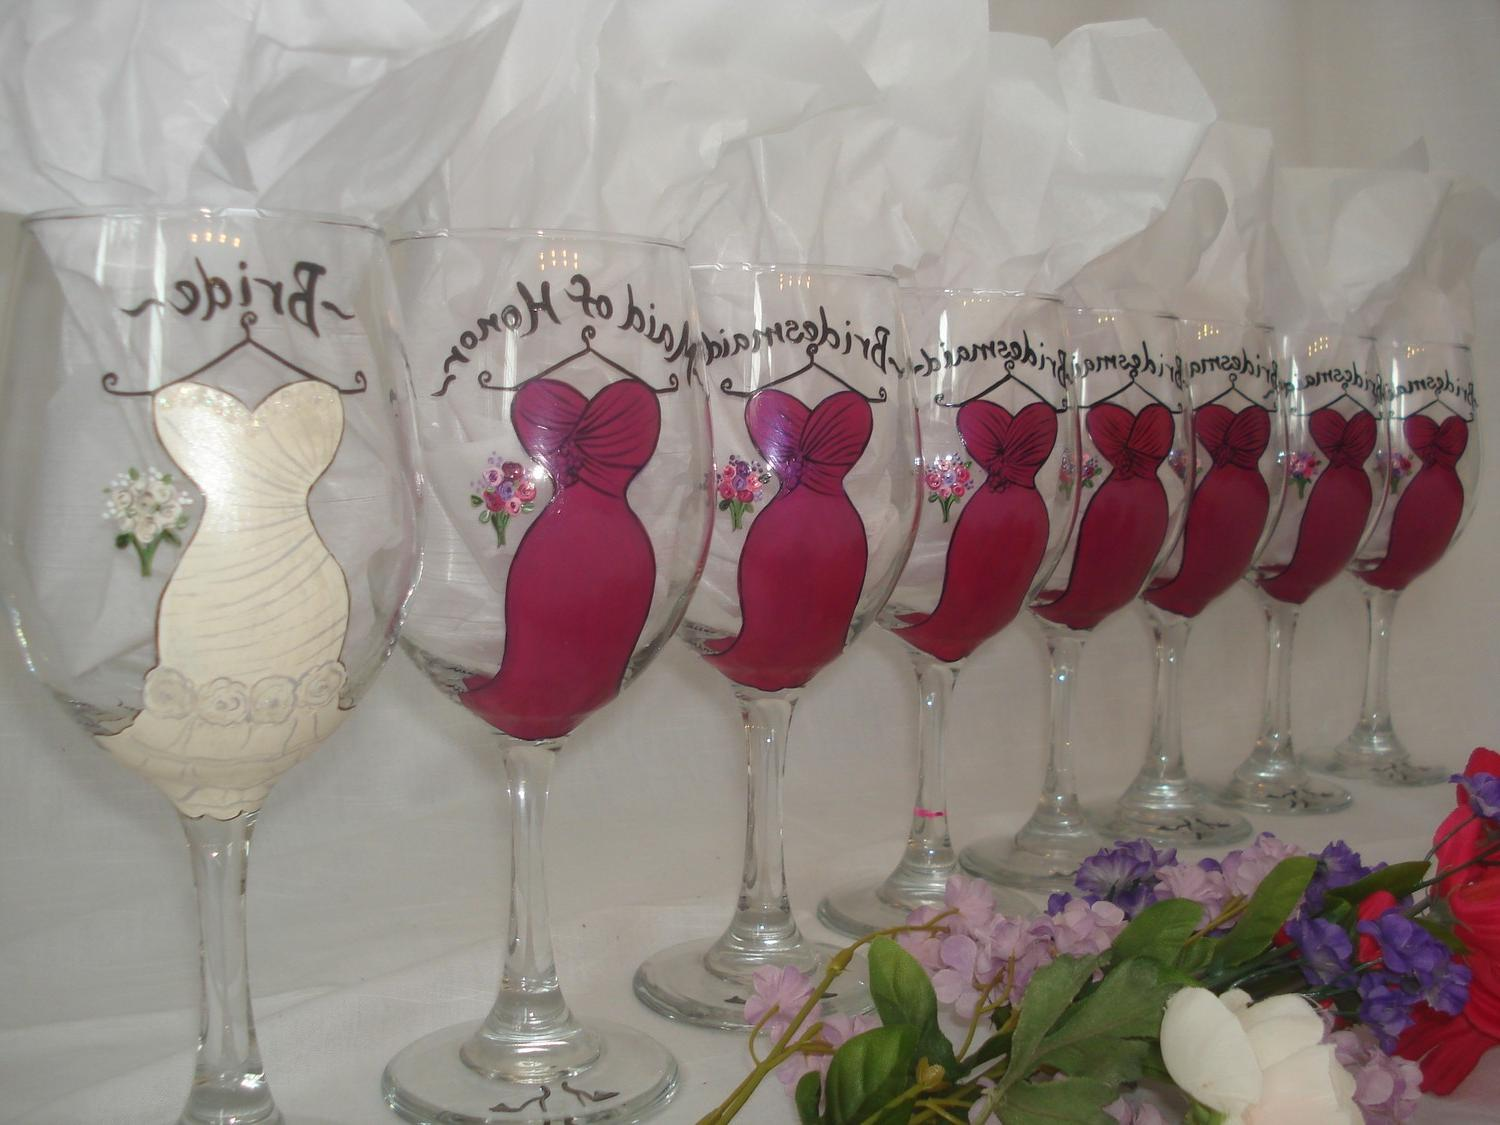 Jena\'s blog: stargazer lilies wedding decor